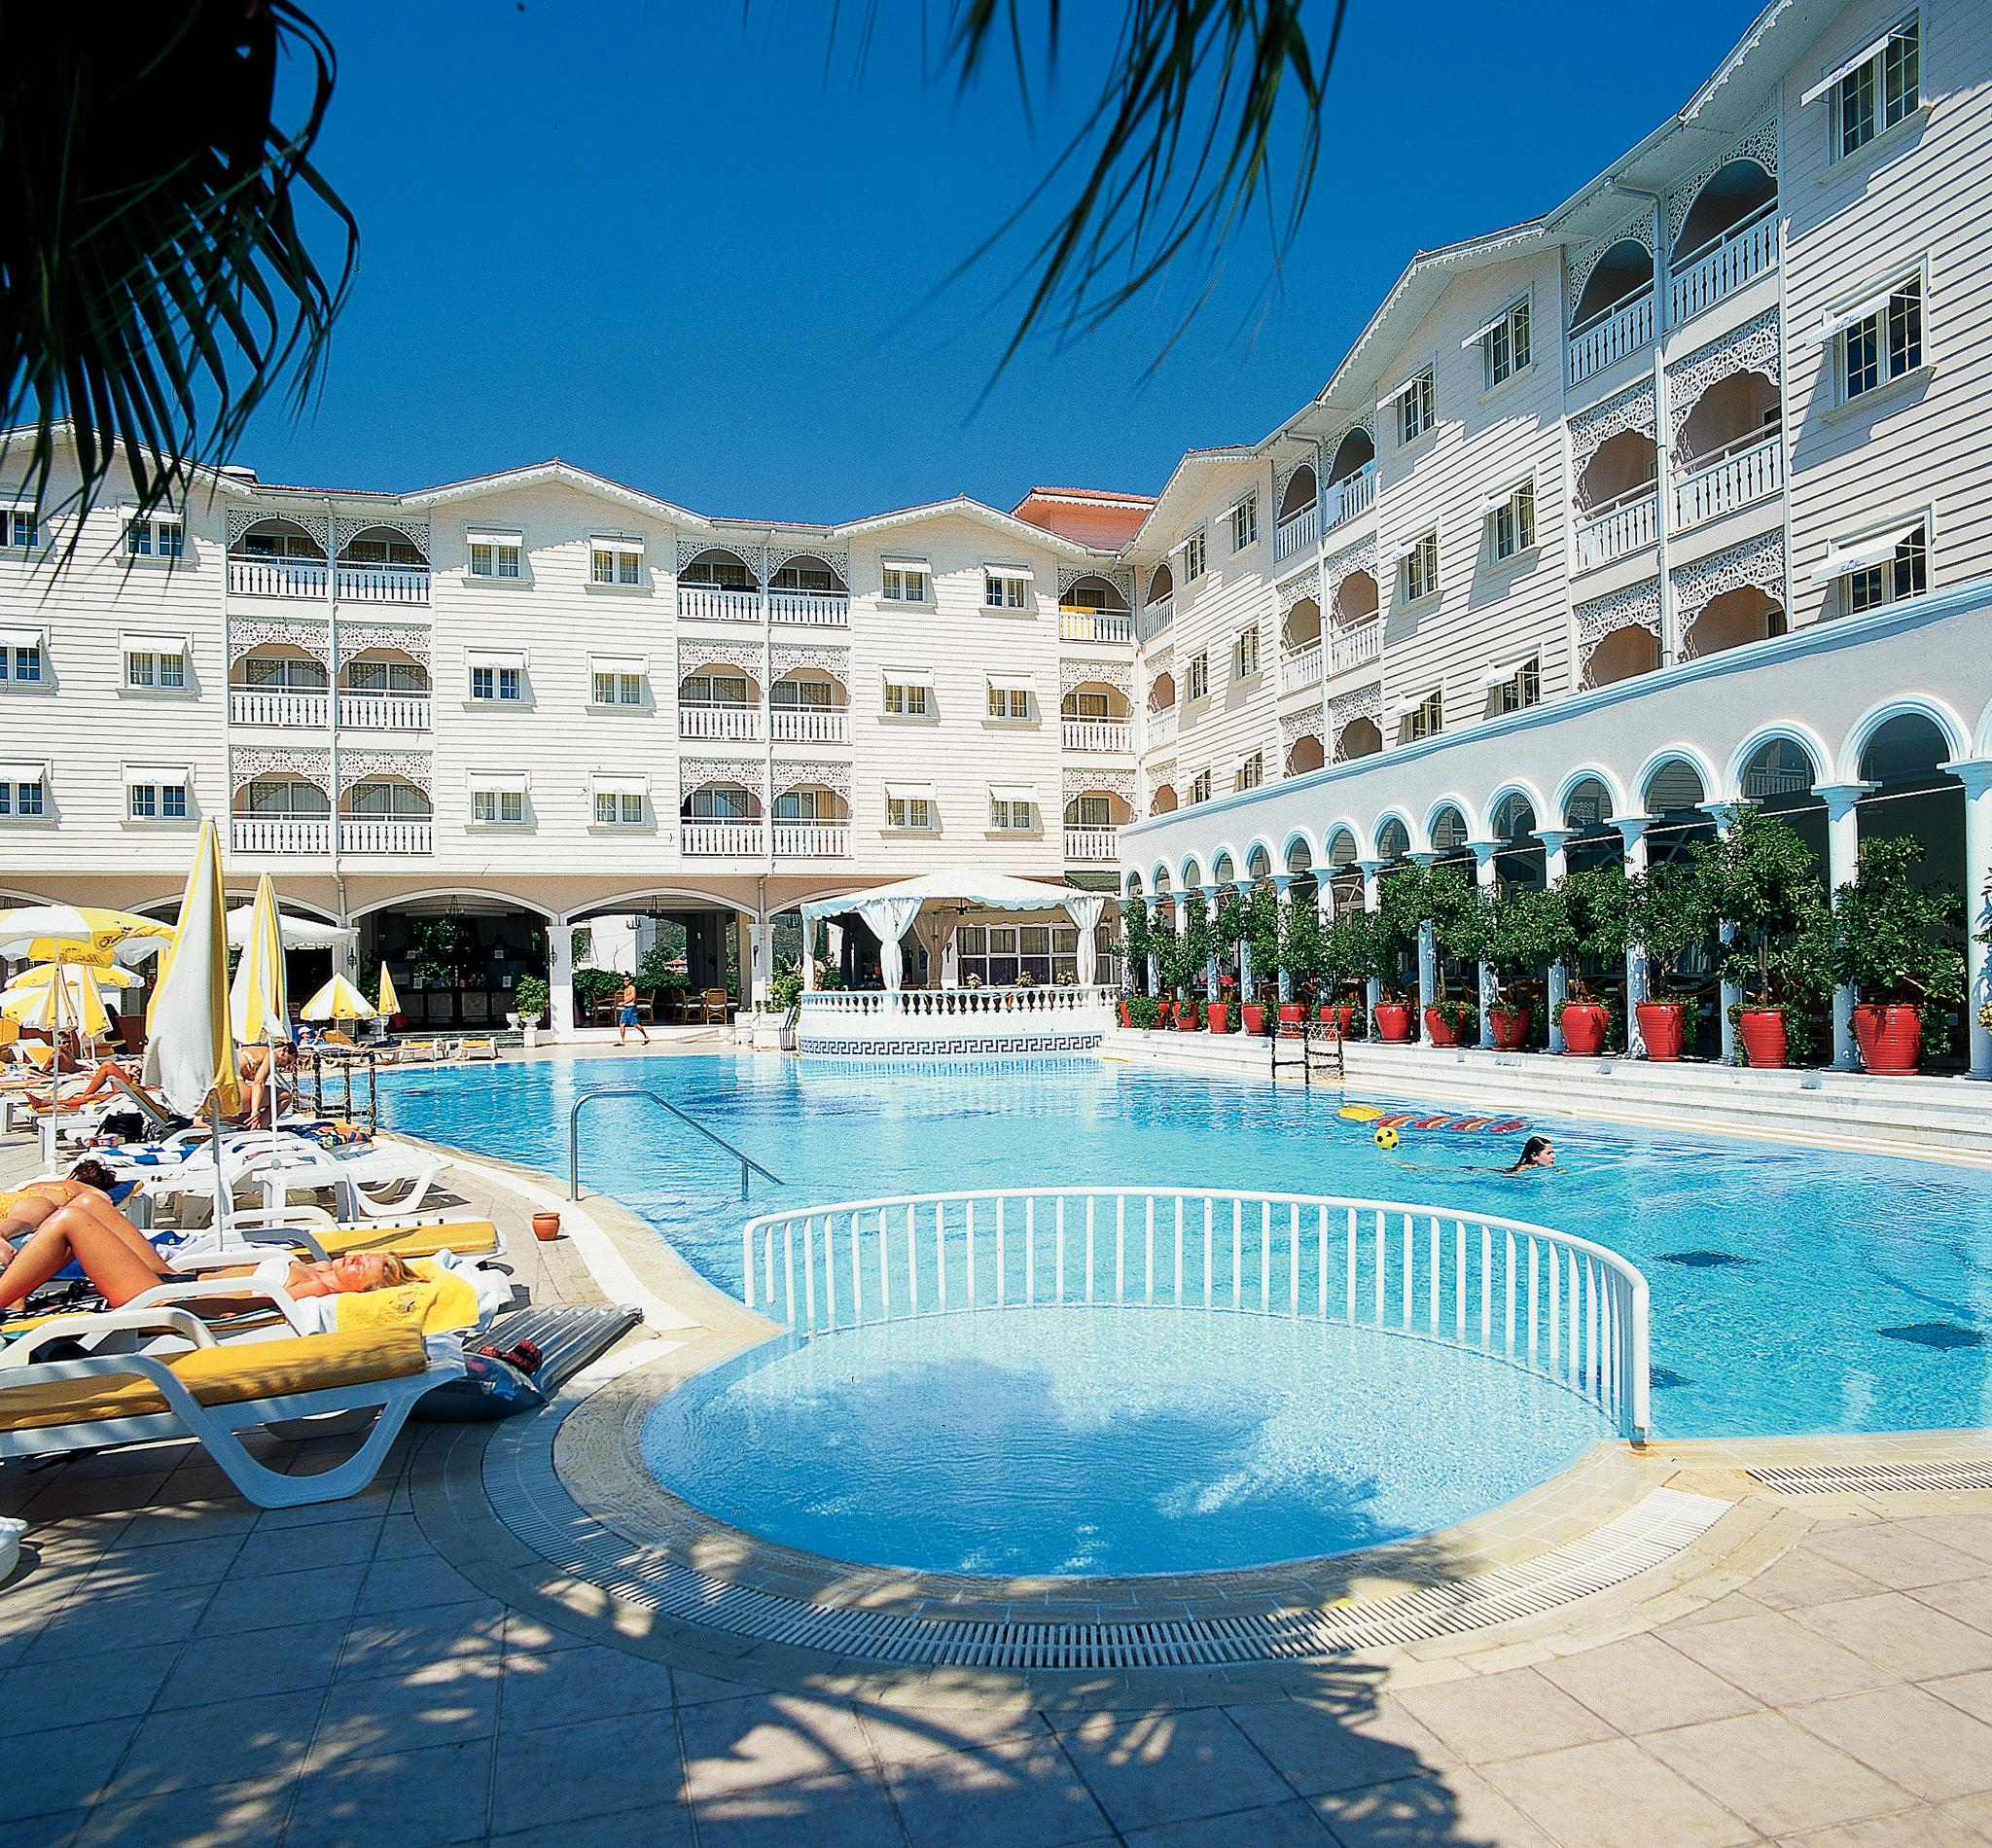 Pashas Princess Hotel in Kemer, Antalya, Turkey